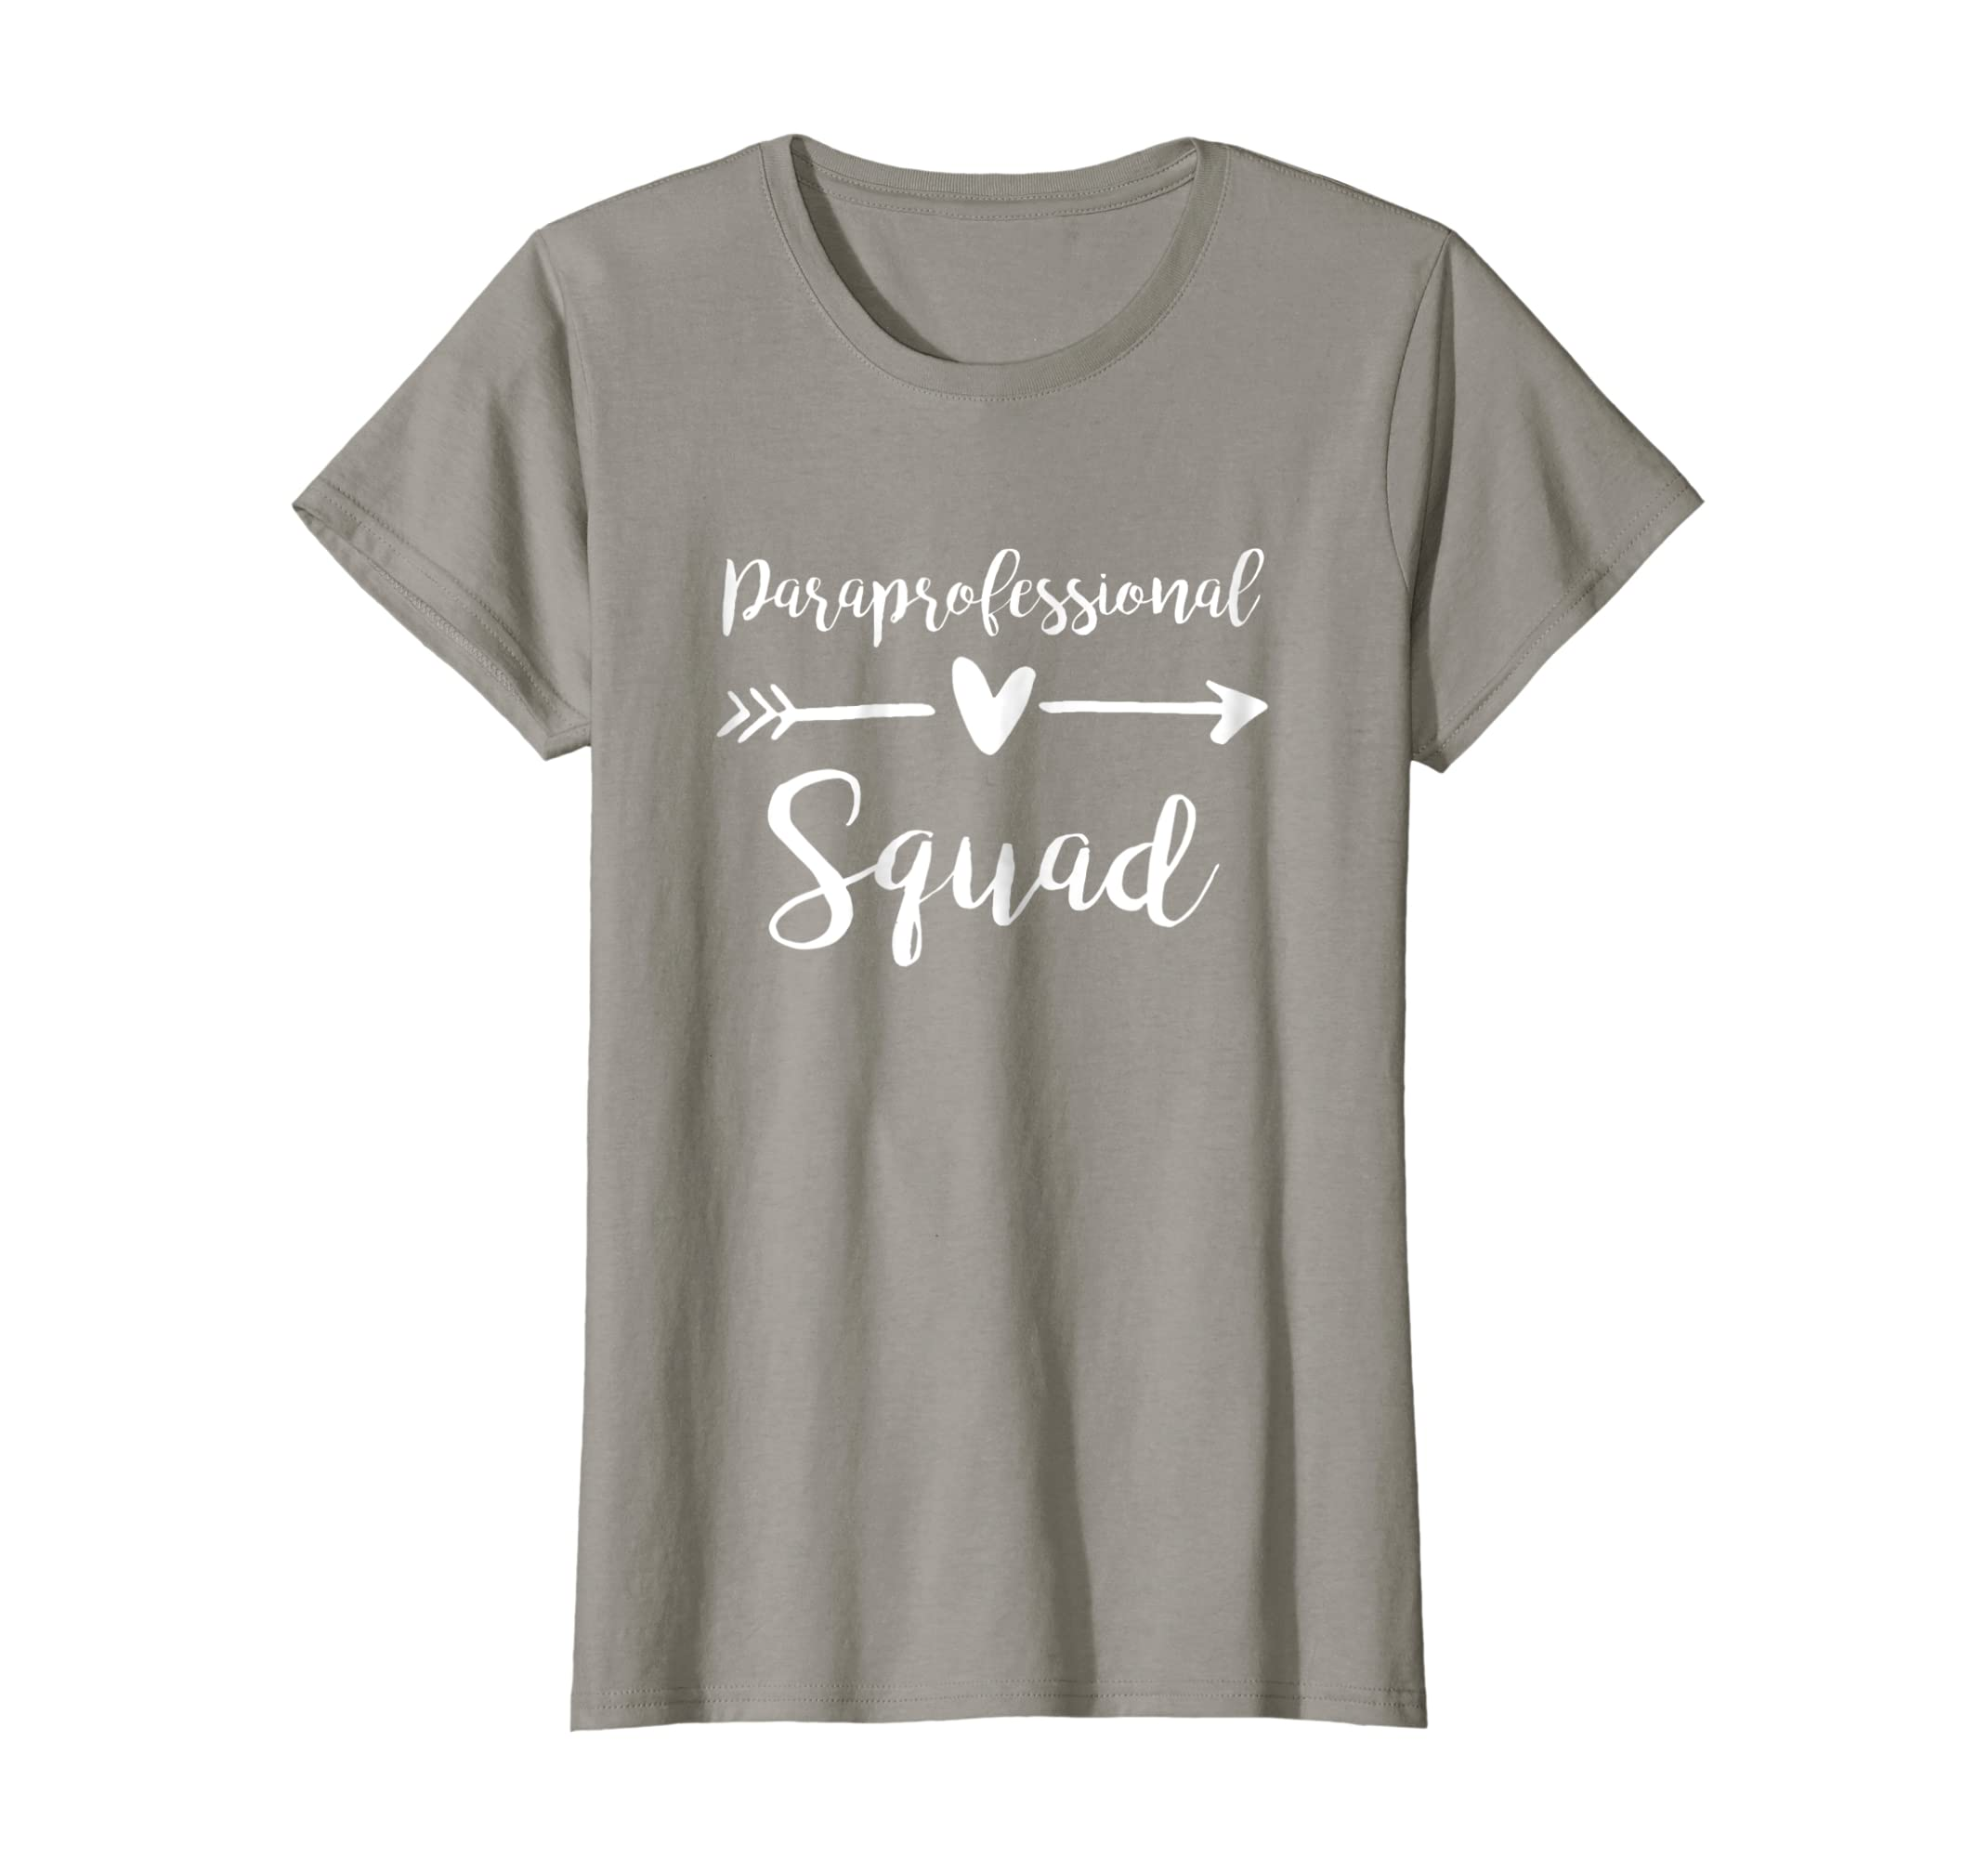 b4d2f453 Amazon.com: Paraprofessional Squad Shirt Cute Paraeducator Gift: Clothing